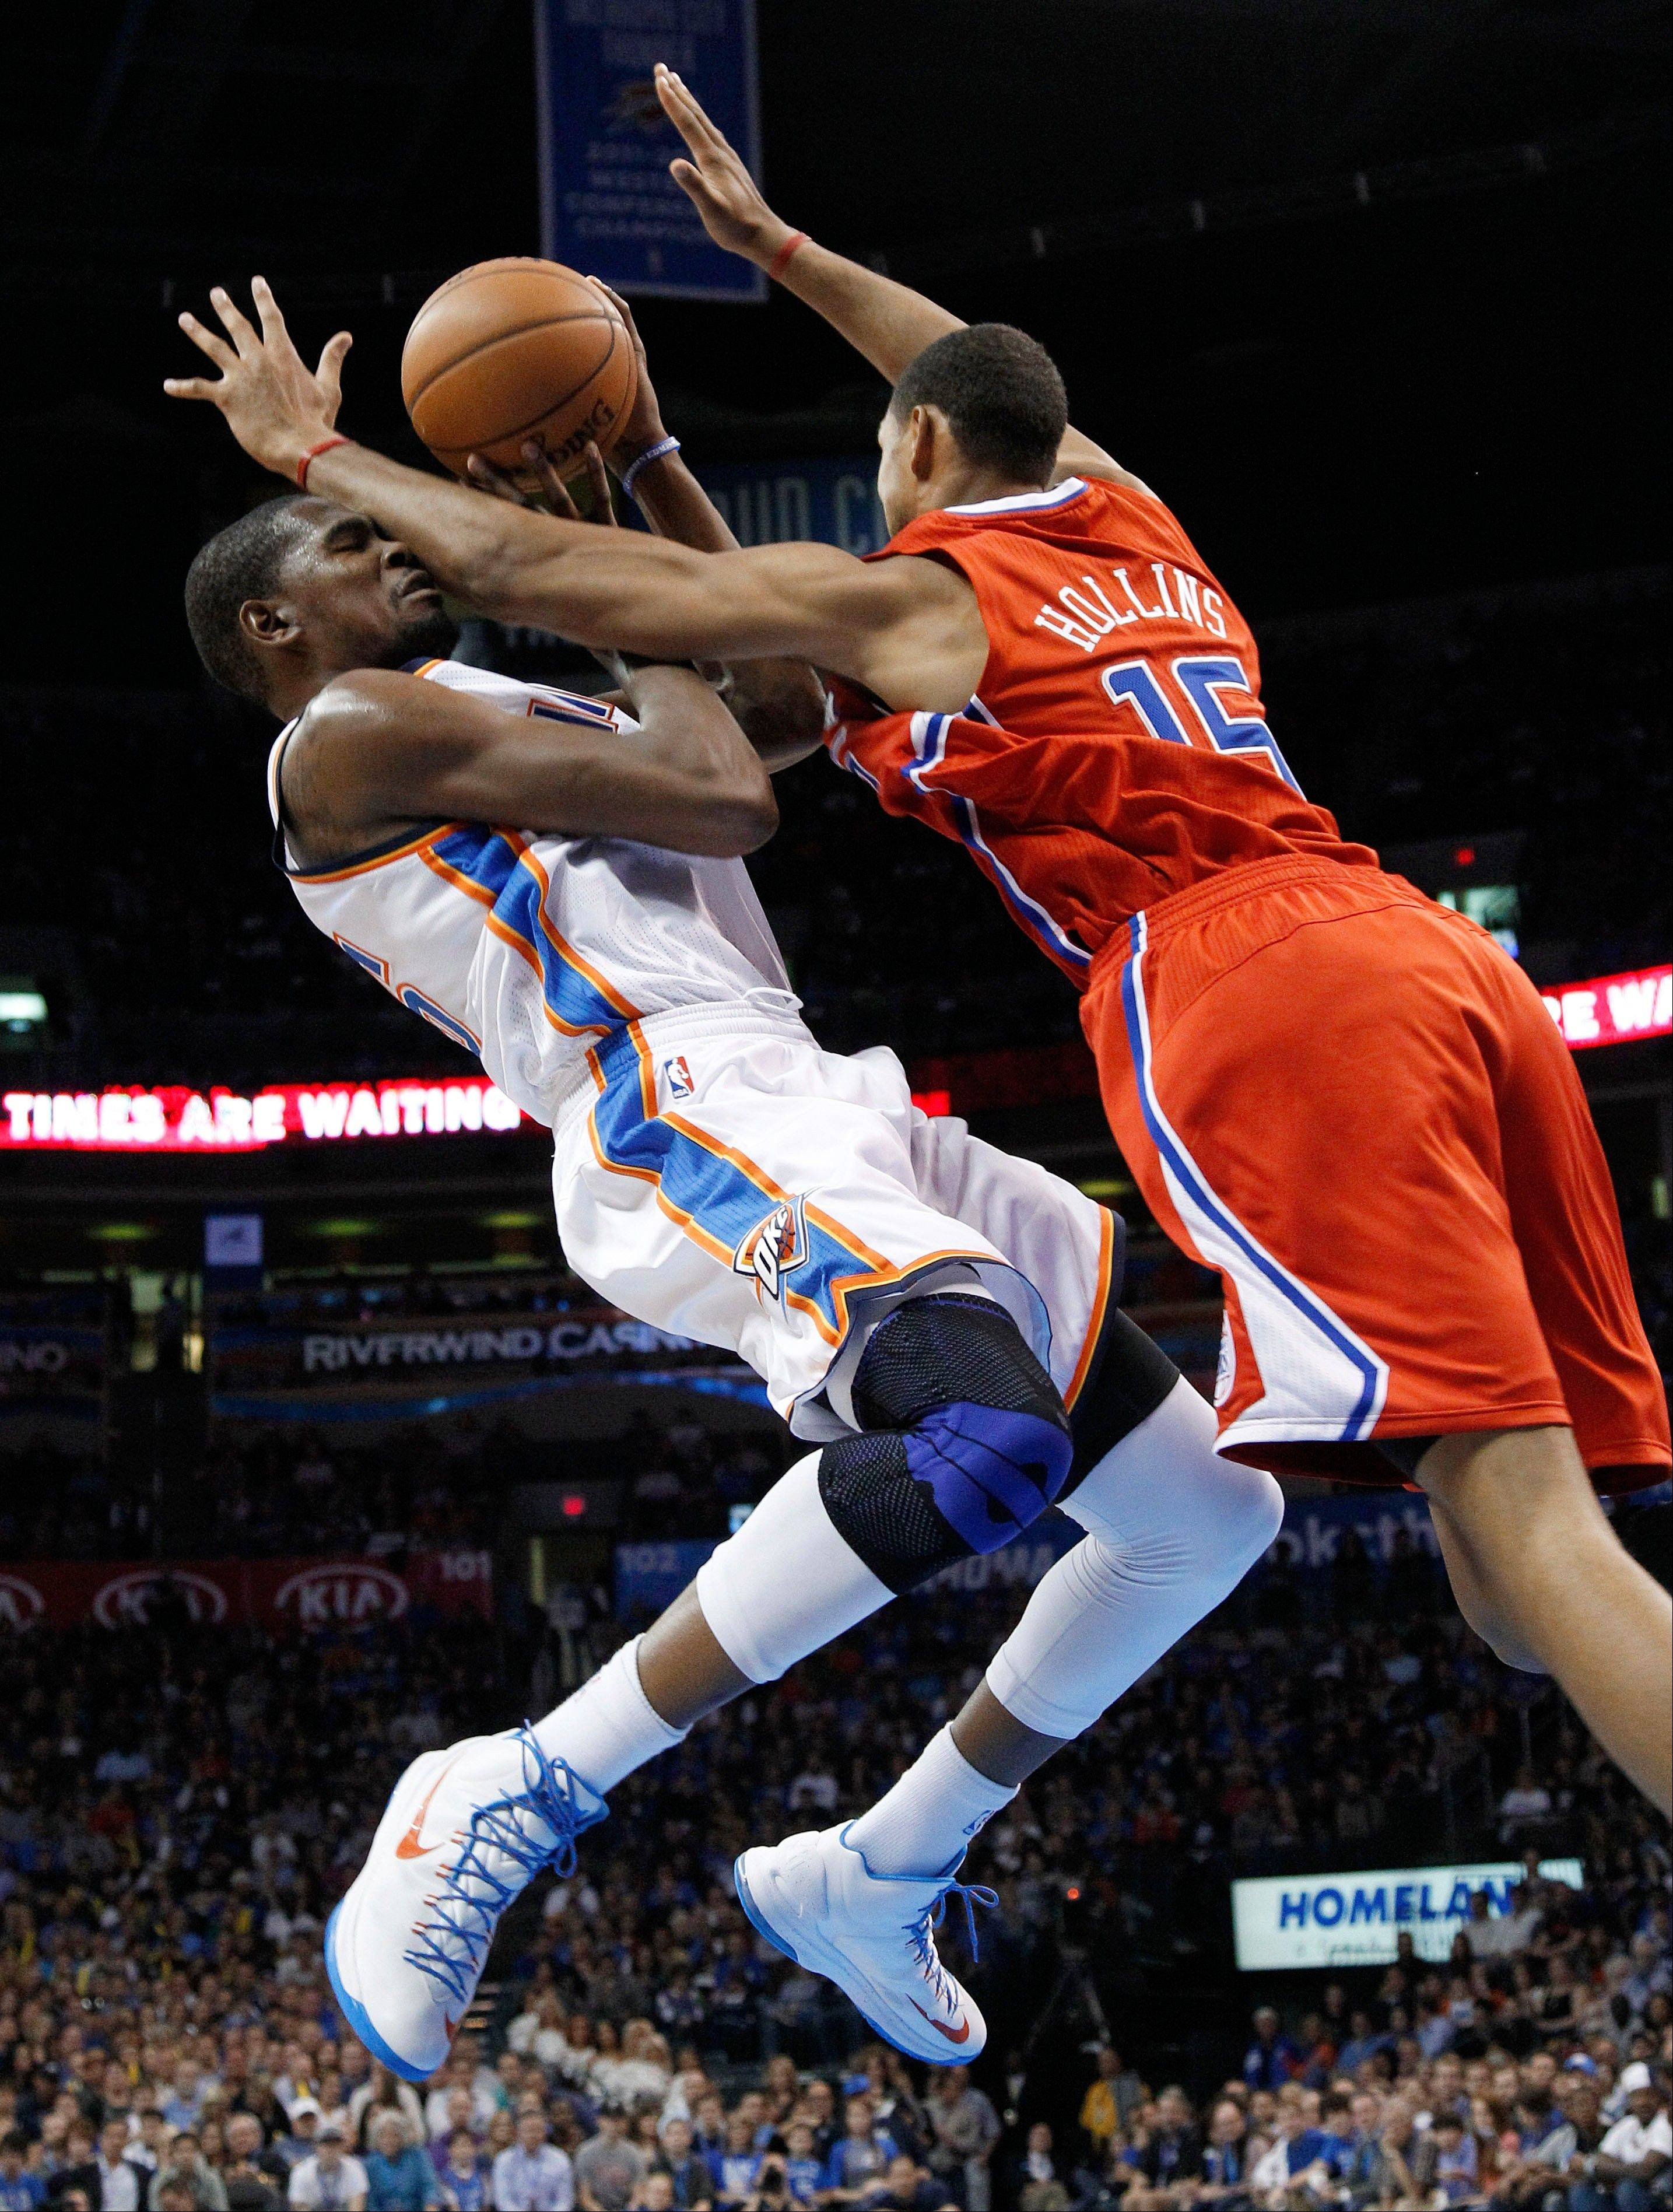 Oklahoma City Thunder forward Kevin Durant (35) is fouled by Los Angeles Clippers center Ryan Hollins (15) as he shoots in the third quarter Wednesday at home.